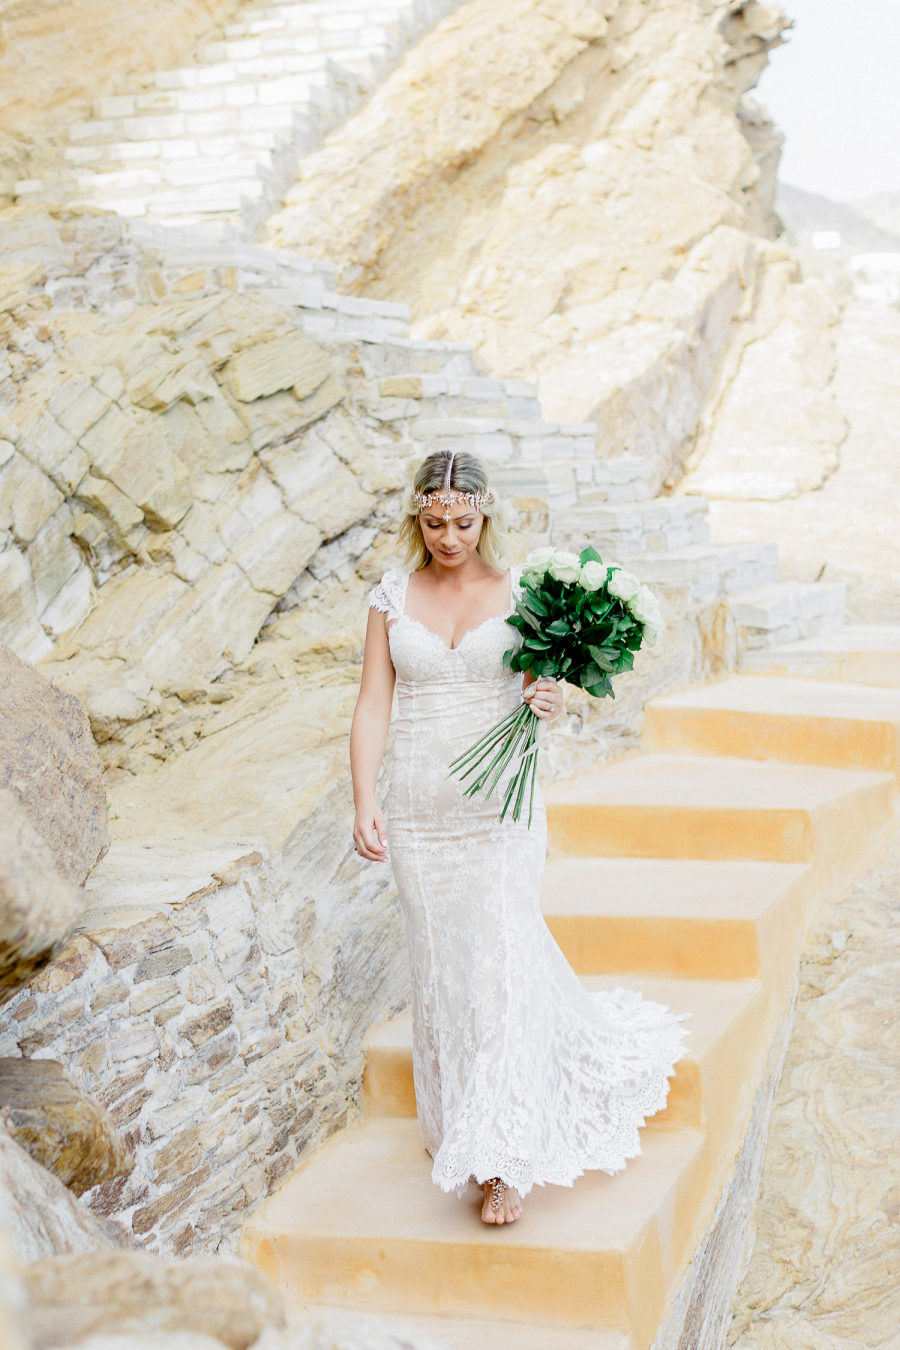 The bride was wearing a boho rinestone headpiece and a lace fitting wedding gown with a train